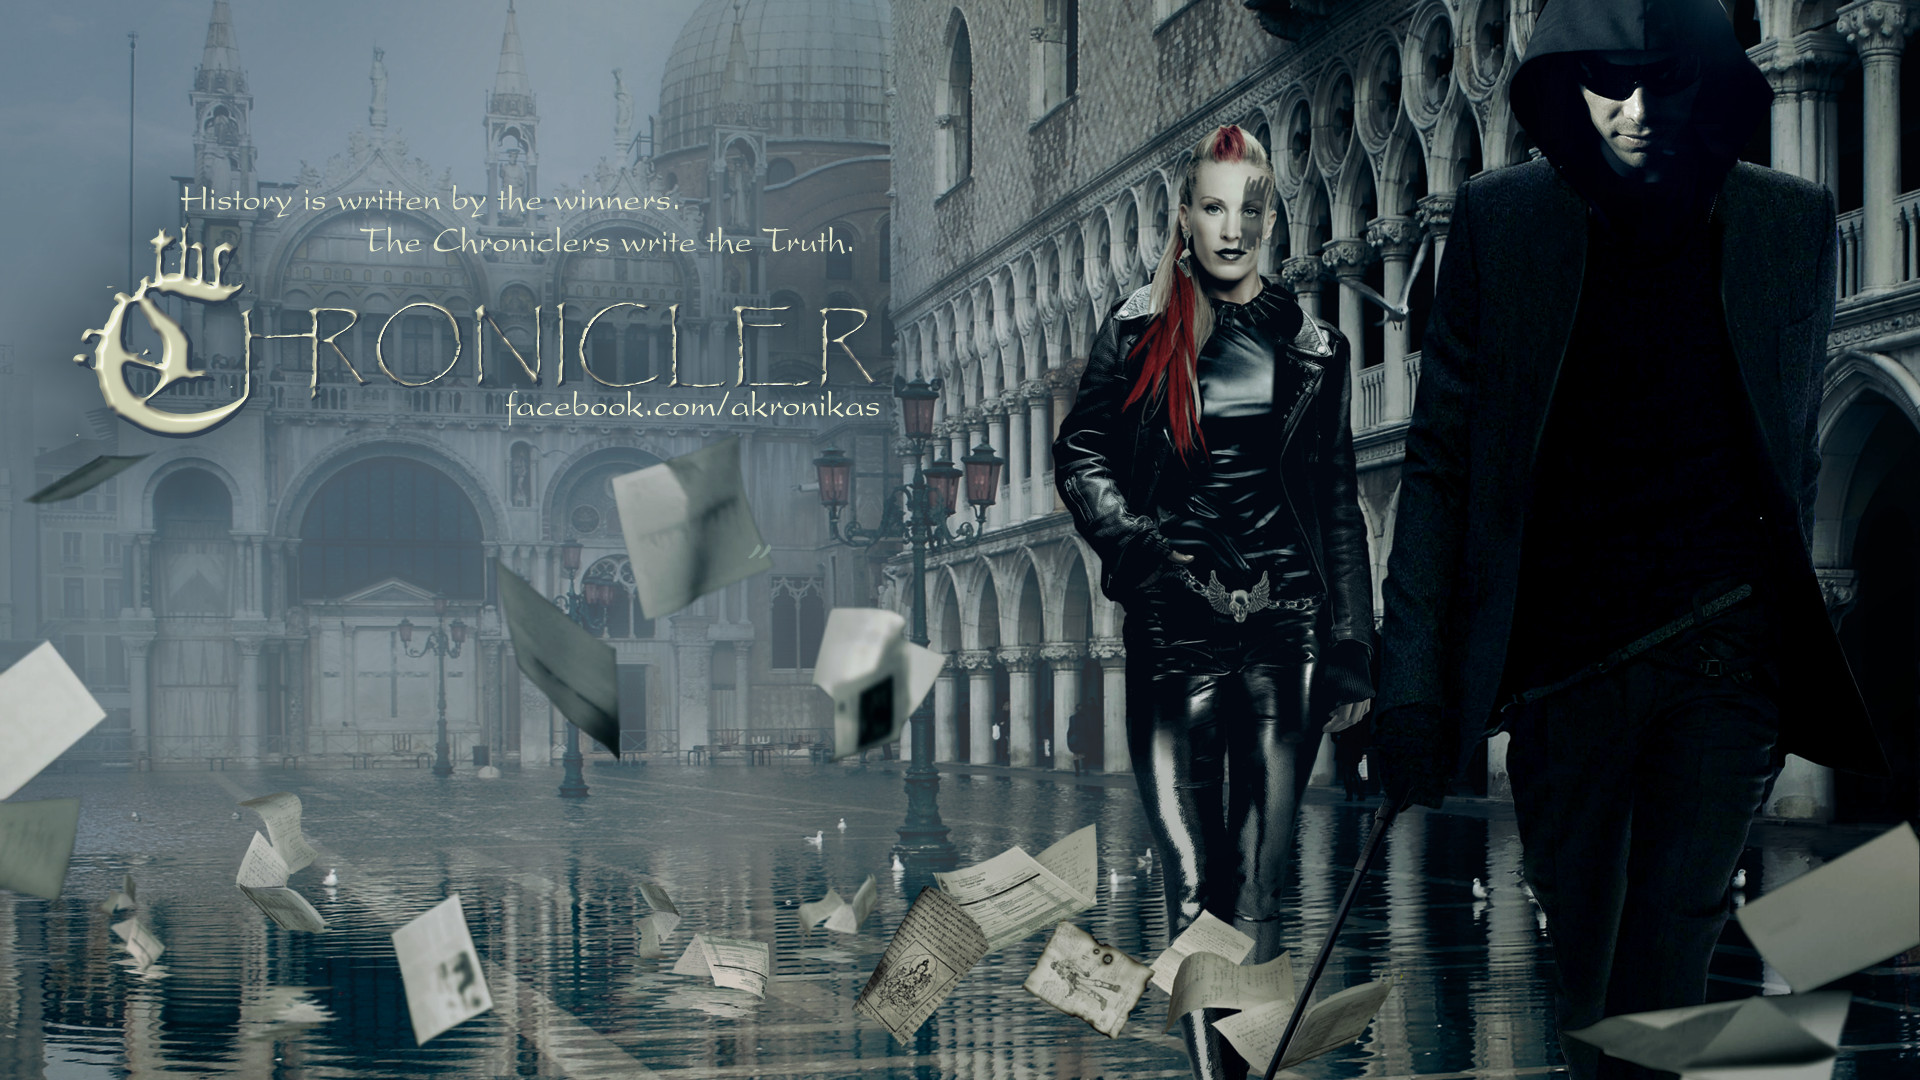 The Chronicler Concept art (3) for my TV series